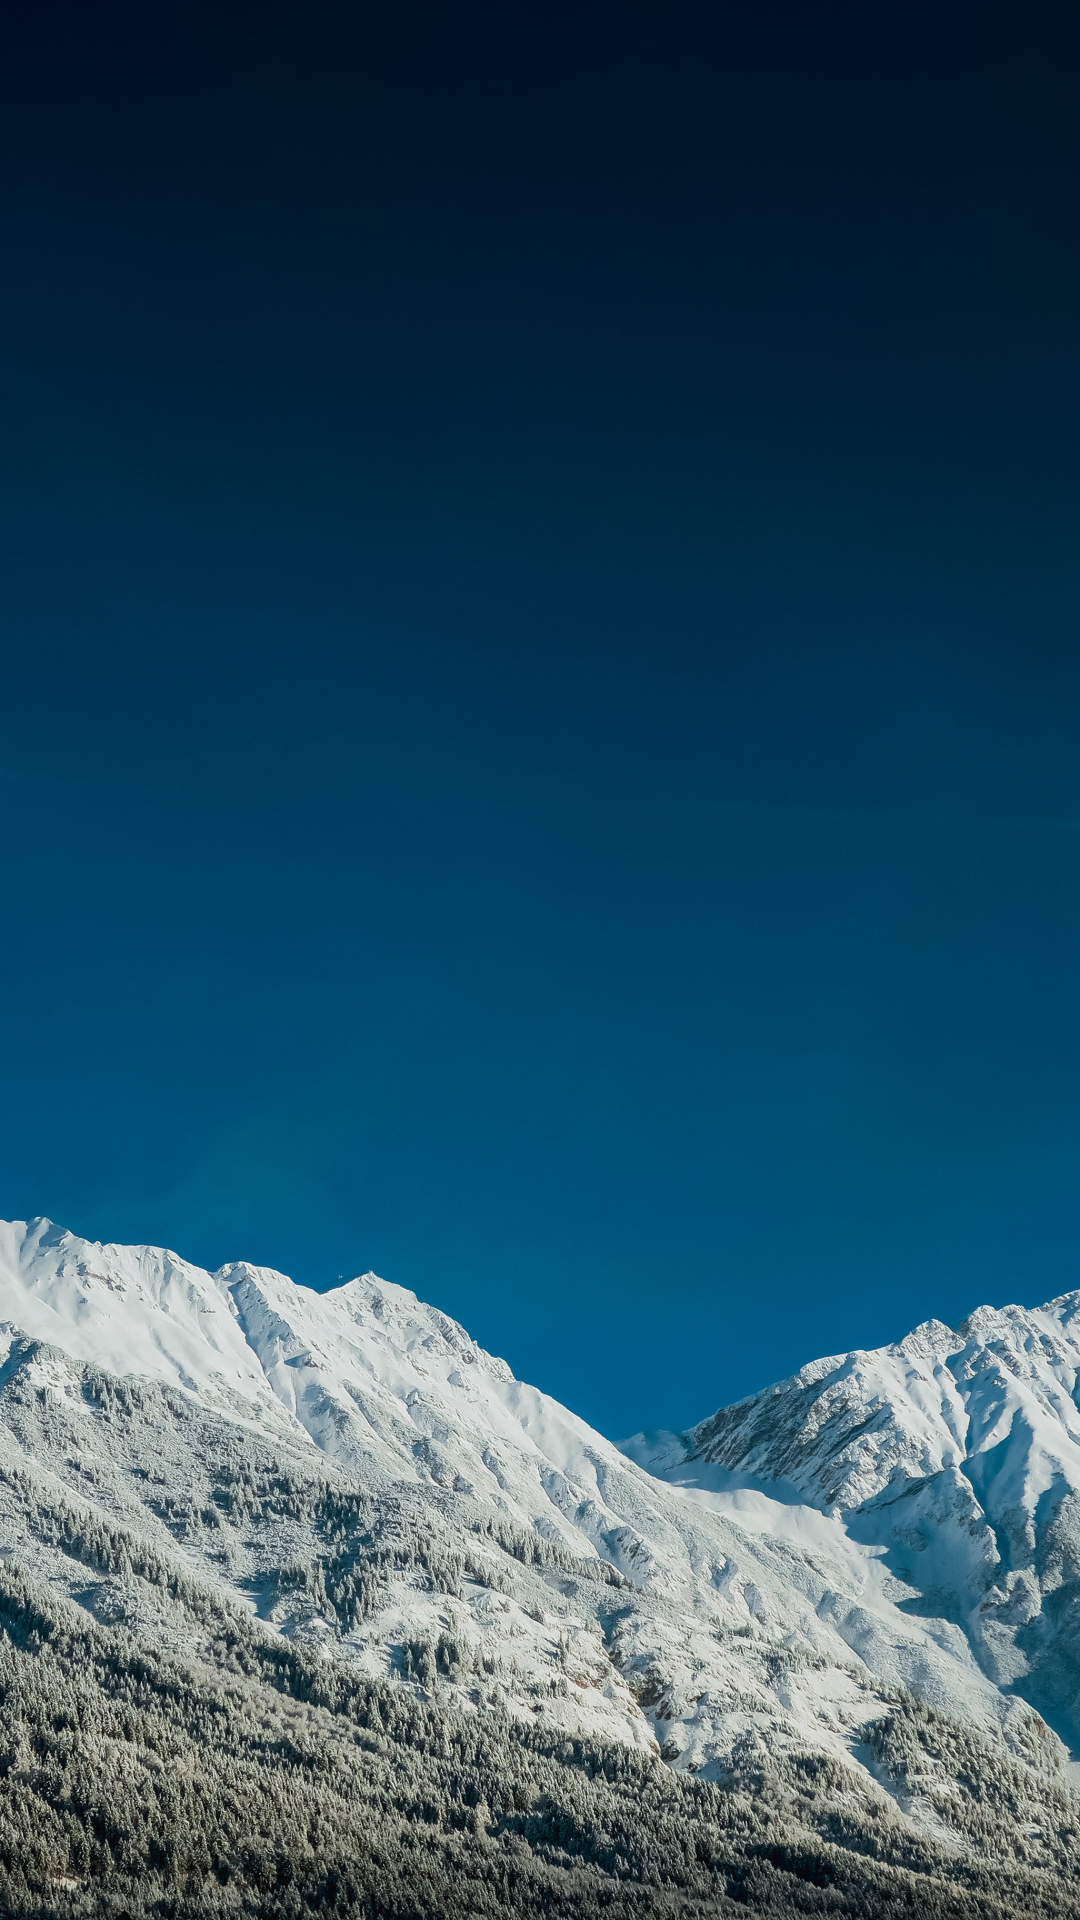 Peak, Mountain iPhone Wallpaper